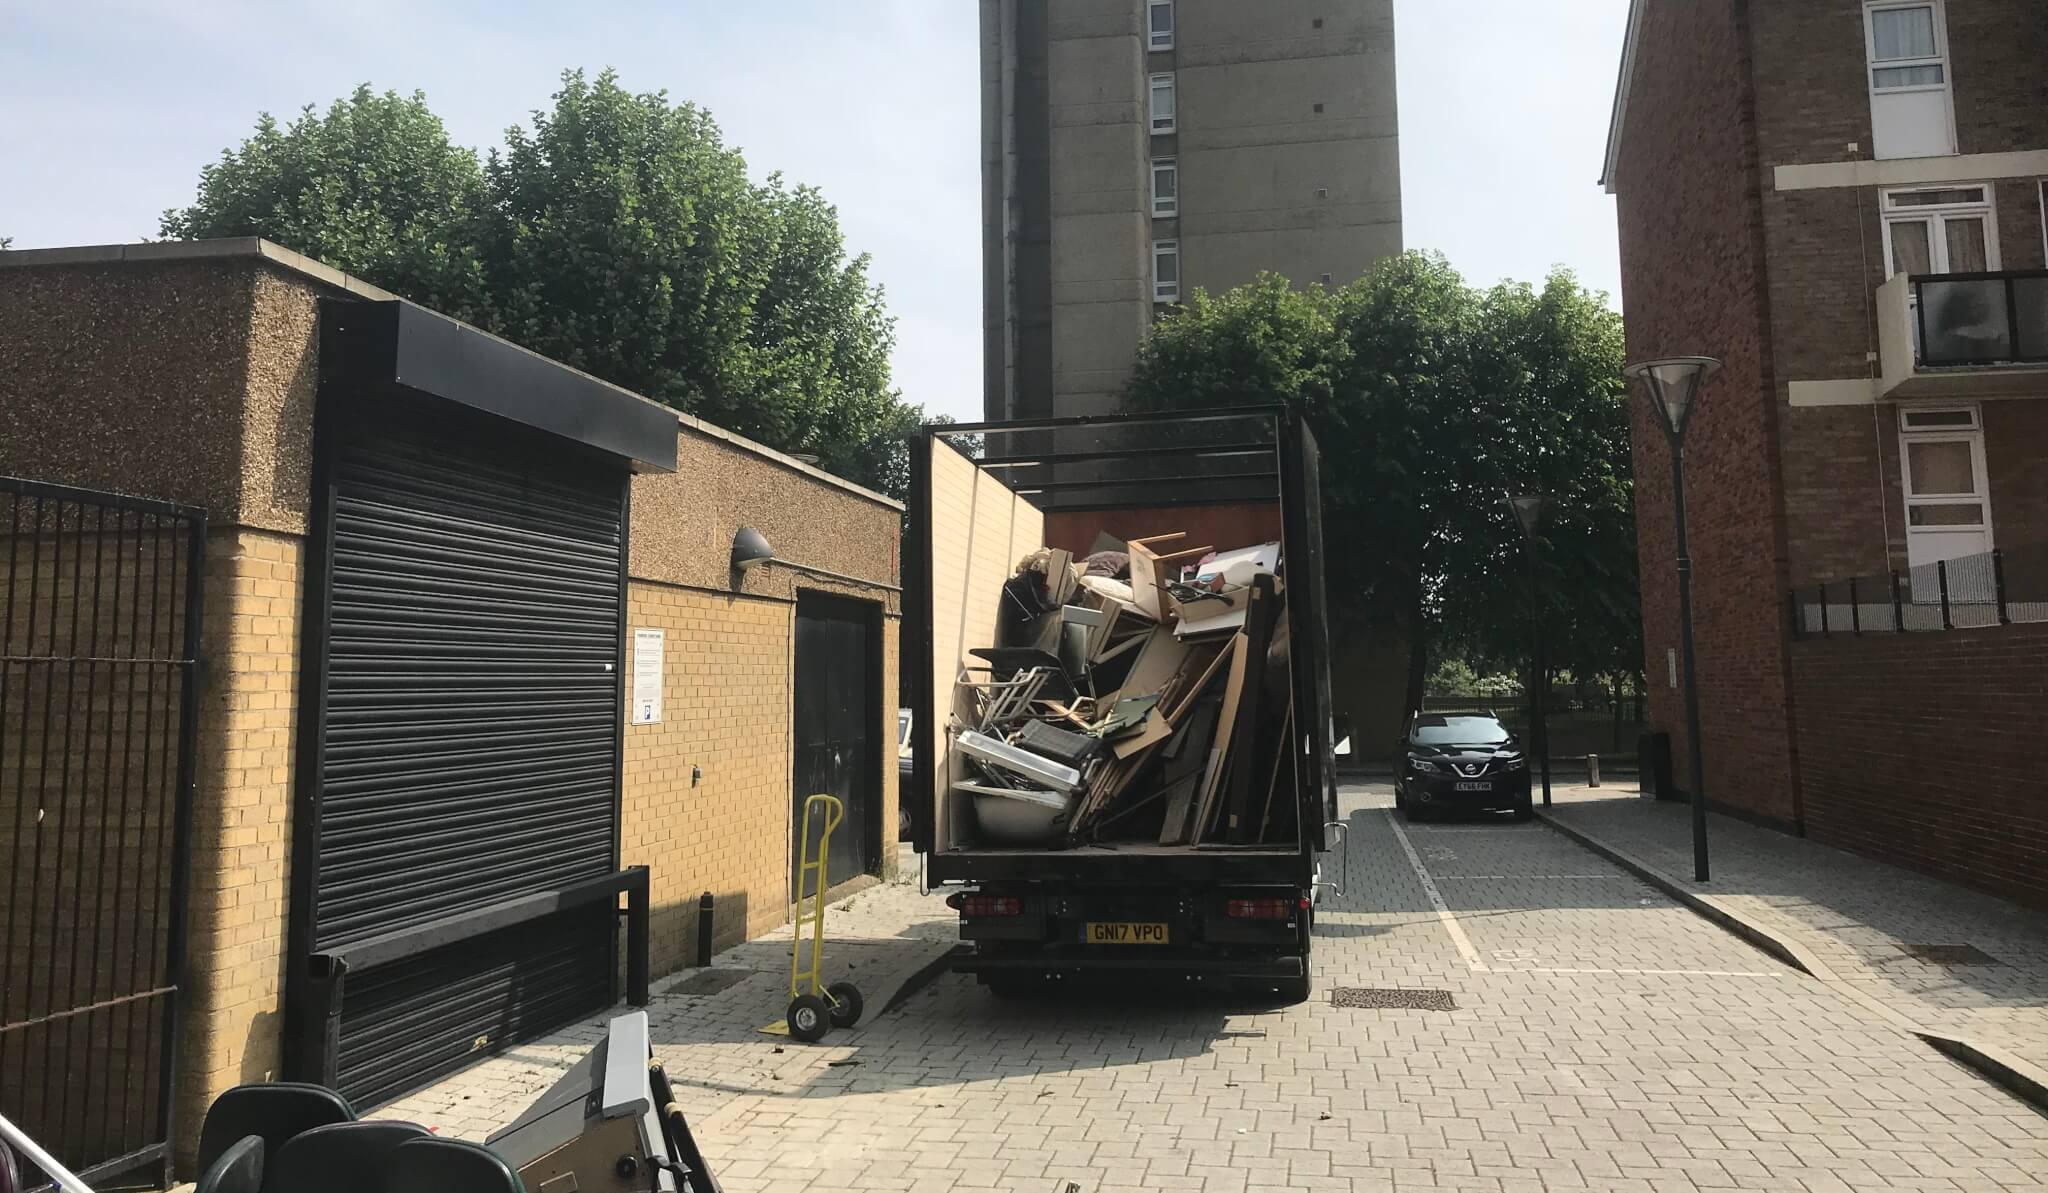 Lorry parked up in street piled full of household rubbish with back open